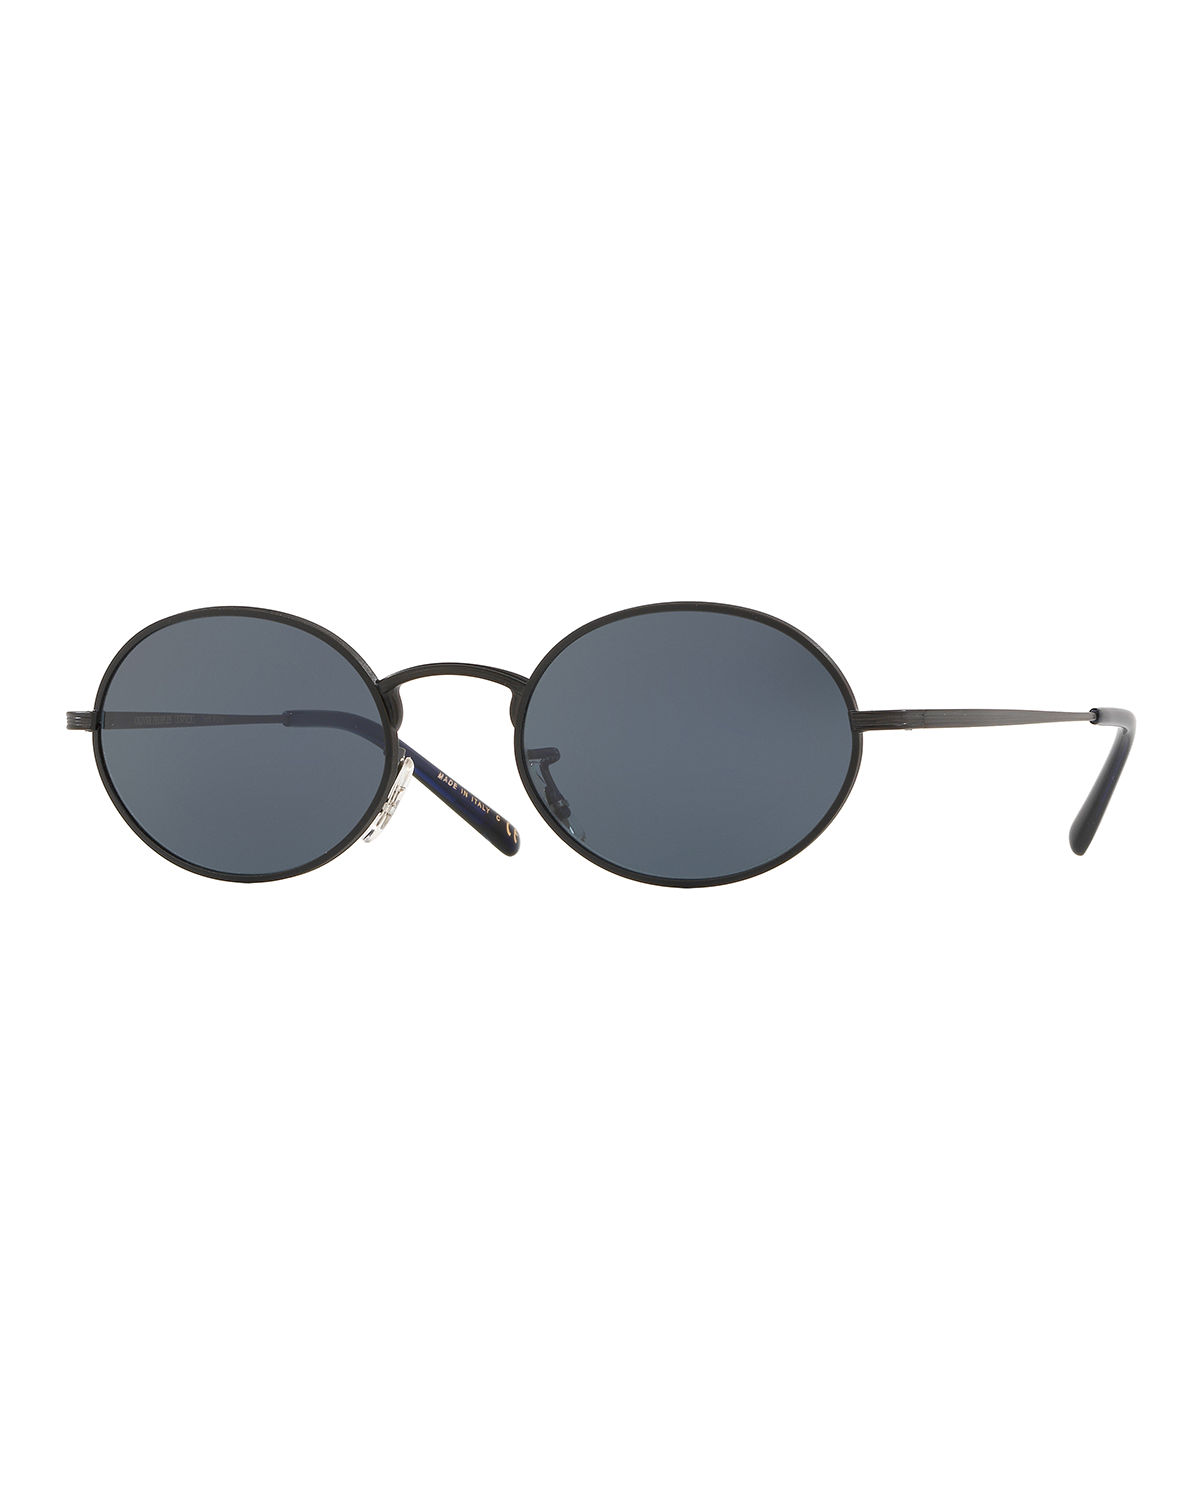 Oliver Peoples Sunglasses MEN'S EMPIRE SUITE MONOCHROMATIC OVAL SUNGLASSES